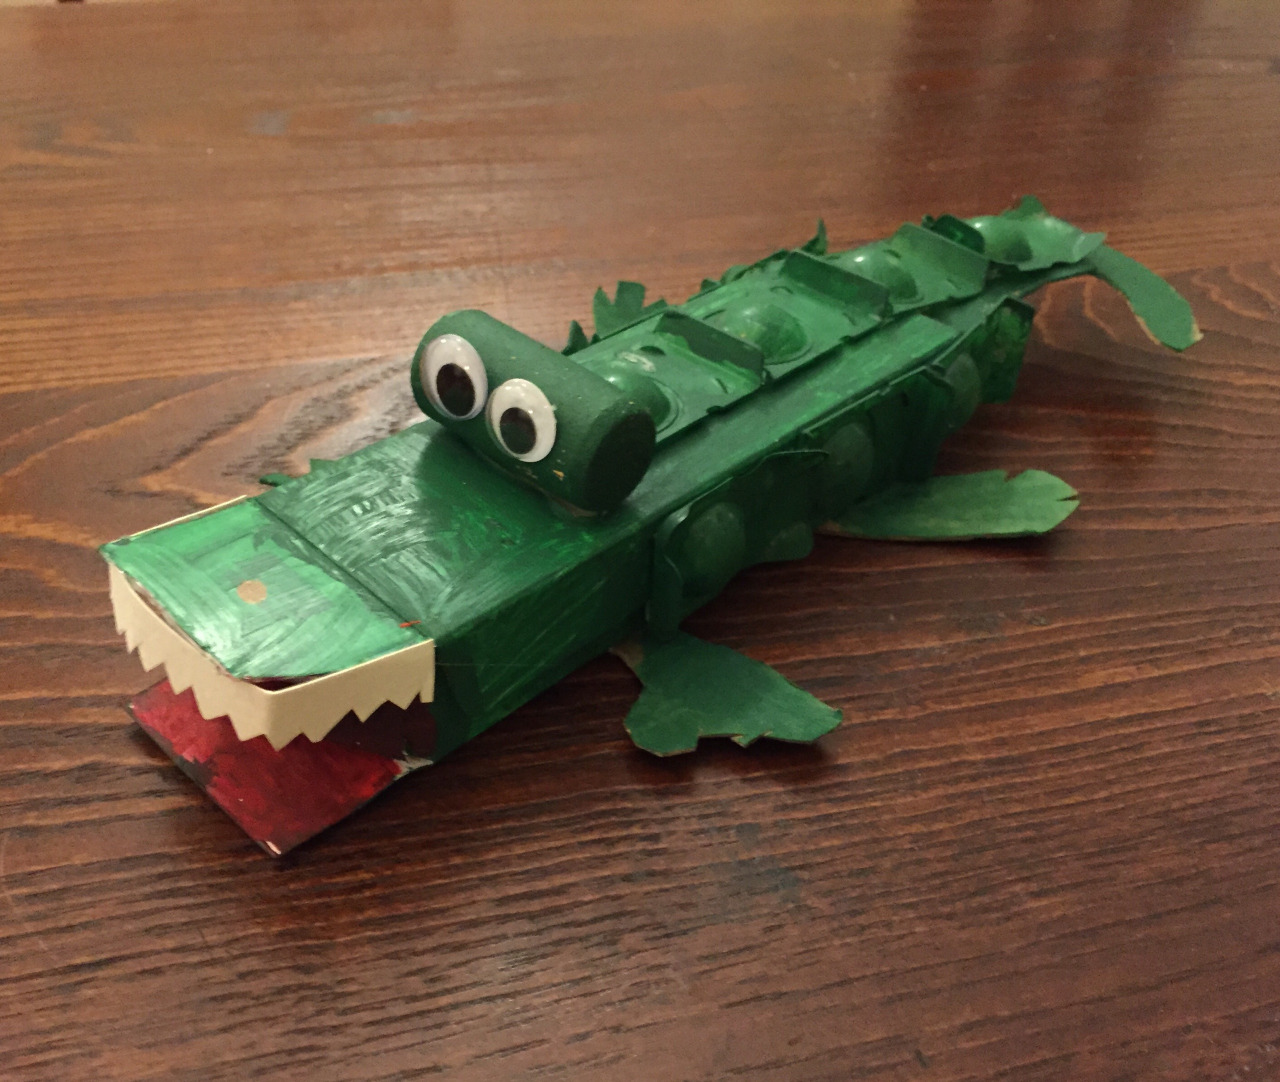 Class 6: Alligator   I wear contact lenses. Daily disposable contact lenses, so each and every day I open up two little plastic pods. The boxes and the pods were crying for another life. Thus, eye present  The Alligator.     Contact lens box   Contact lens pods  Cork  Cardboard